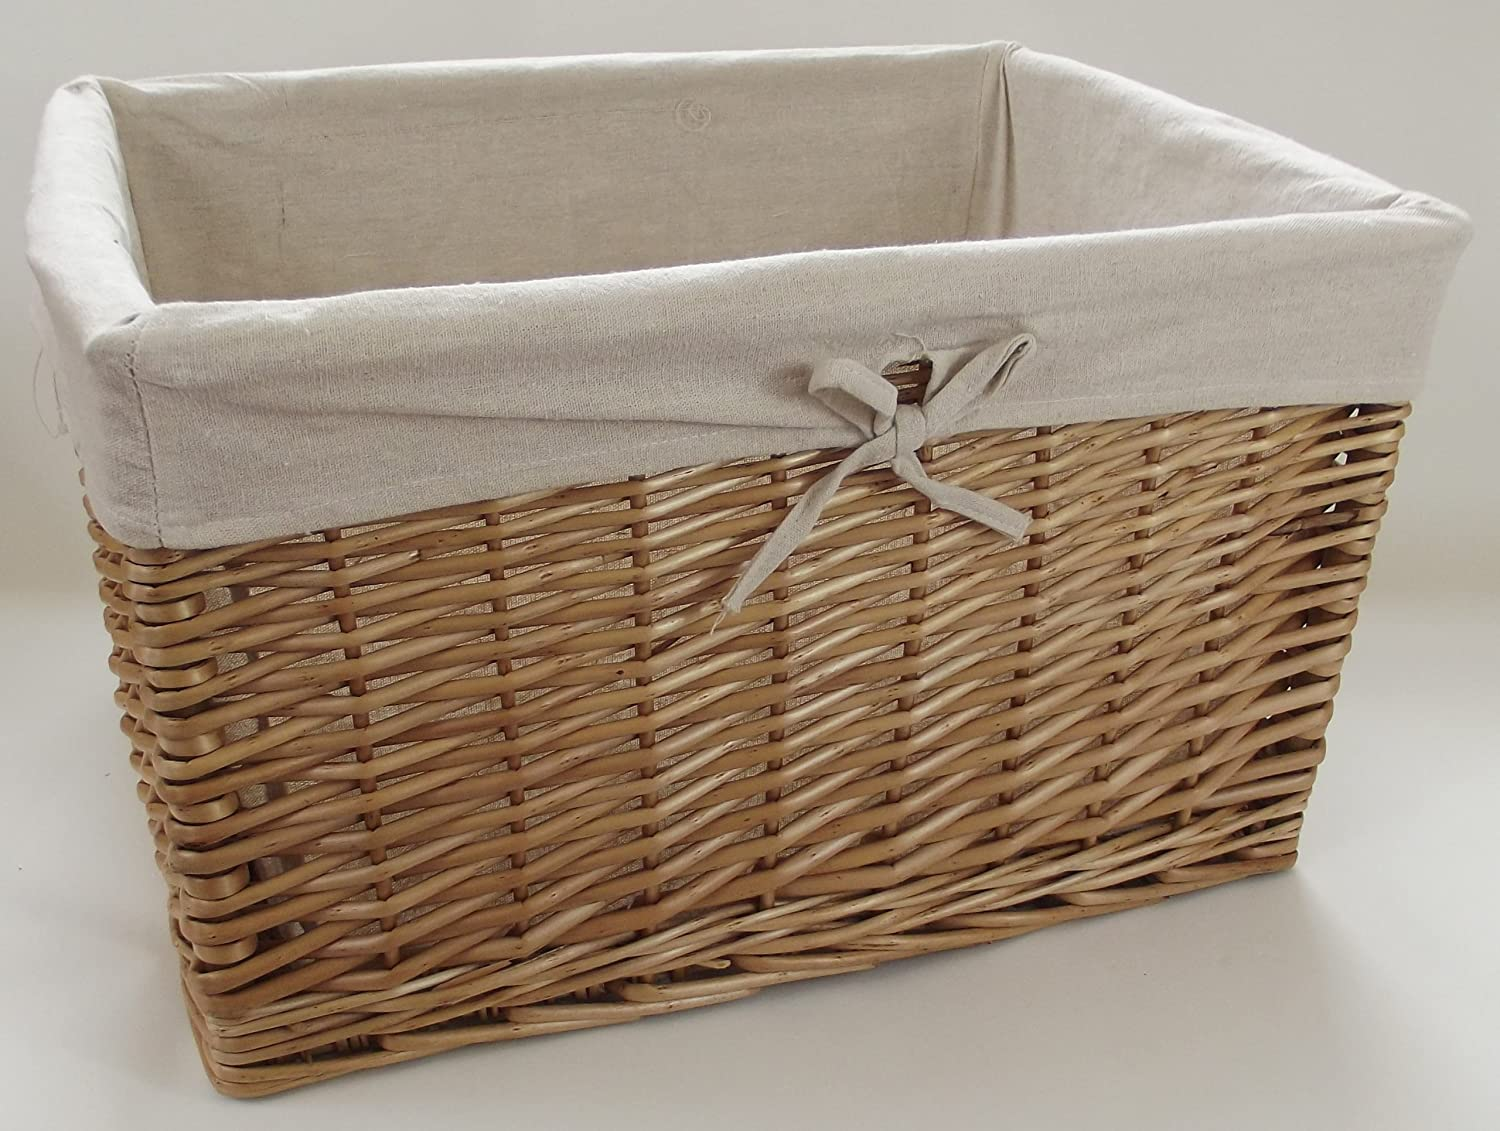 Deep basket natural wicker colour lined large size 3 with removable lining. storage